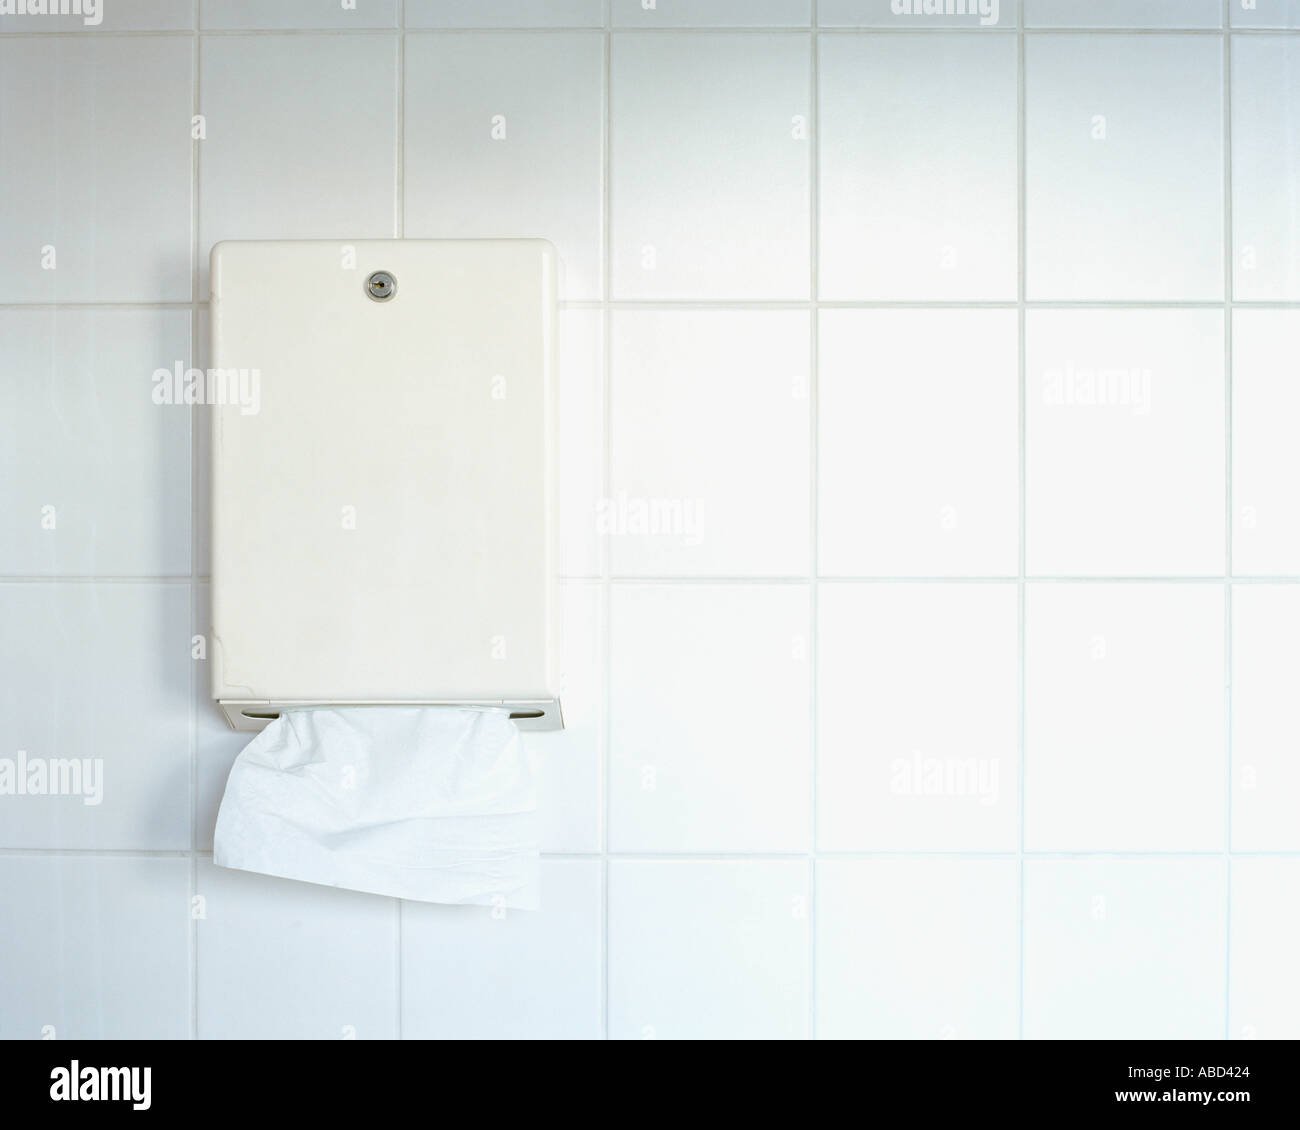 Paper towel dispenser on wall - Stock Image